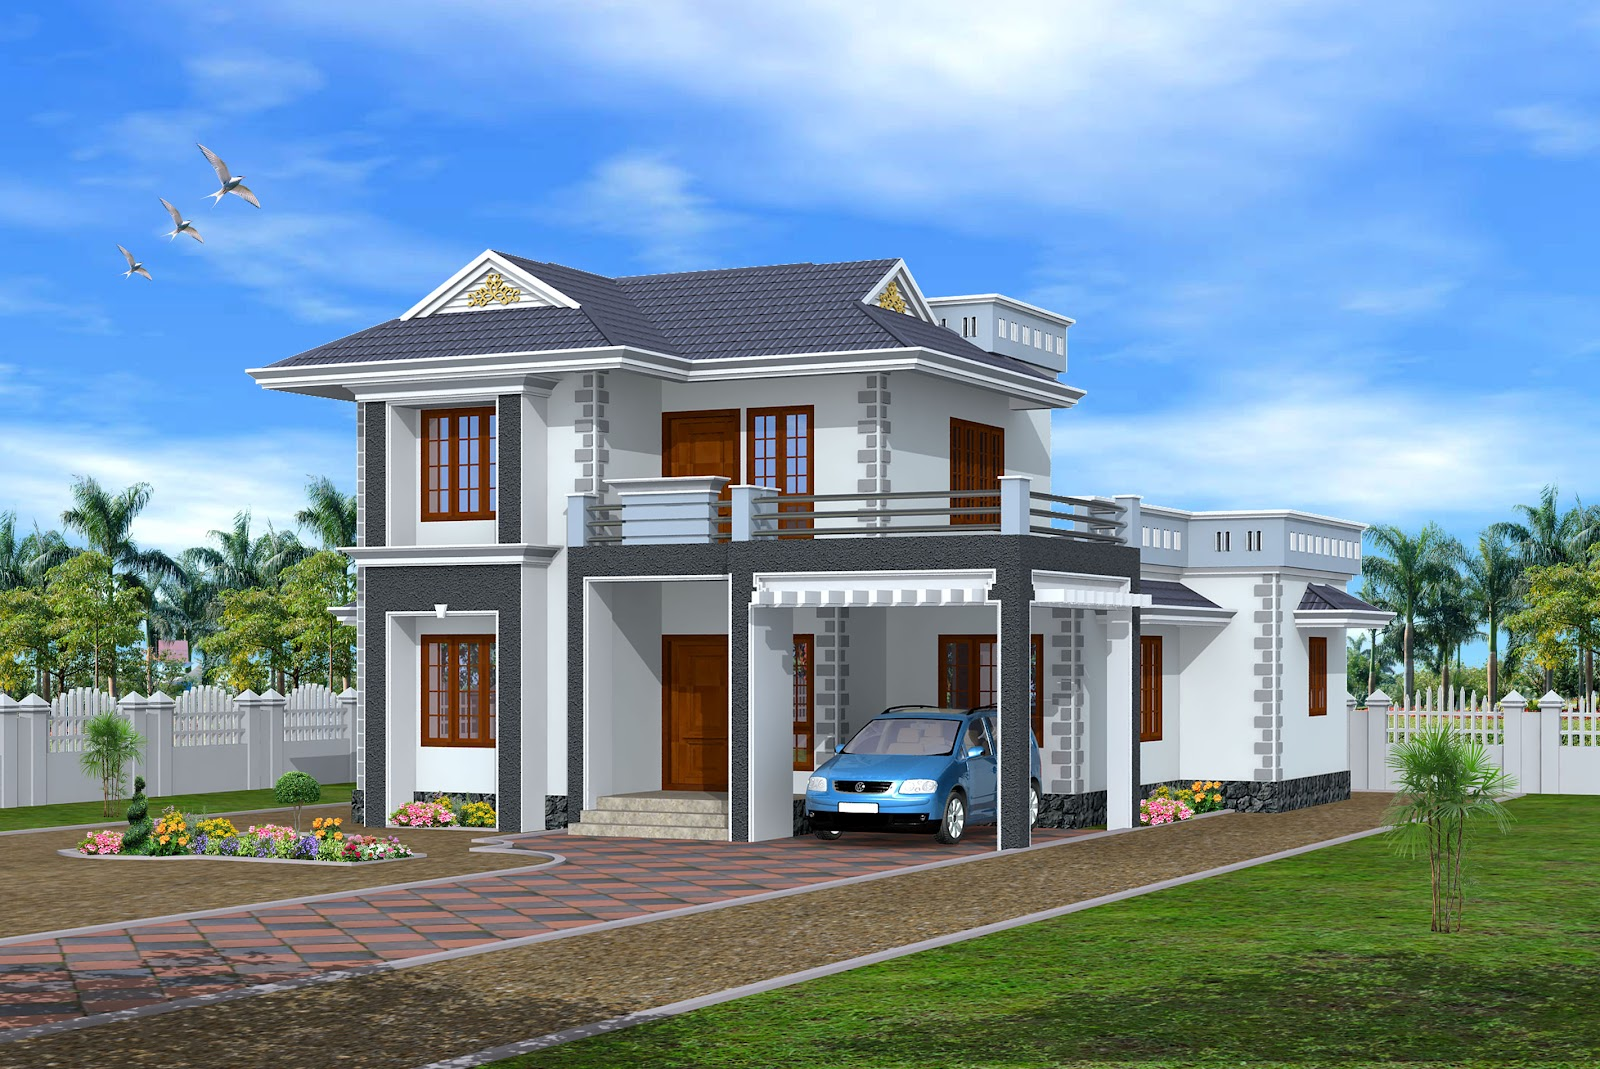 New home designs latest.: Modern homes exterior designs views.